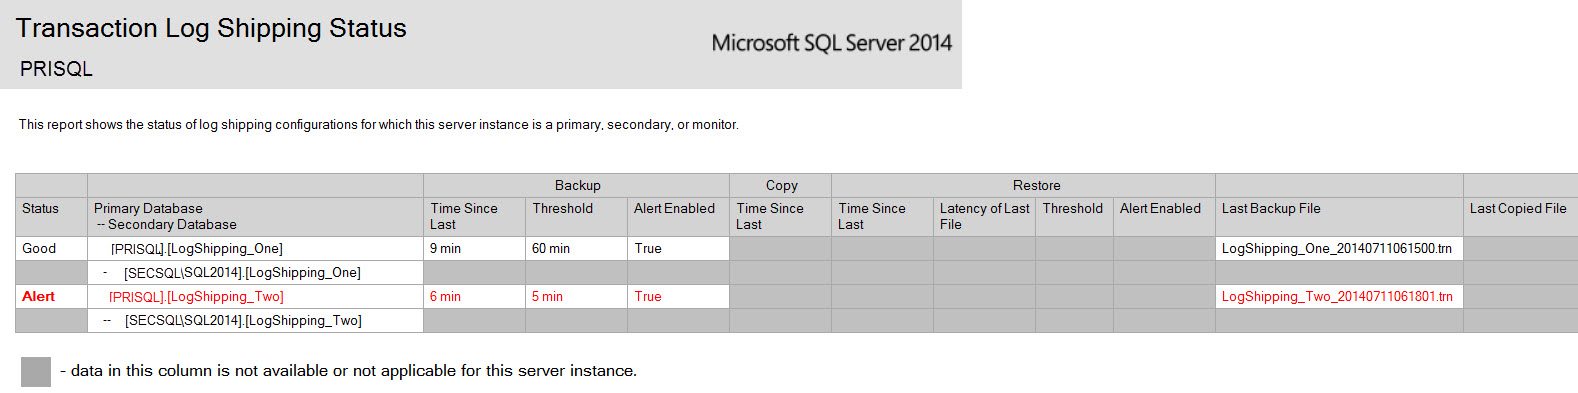 SQL SERVER - SSMS: Transaction Log Shipping Status Report reportlaunch2